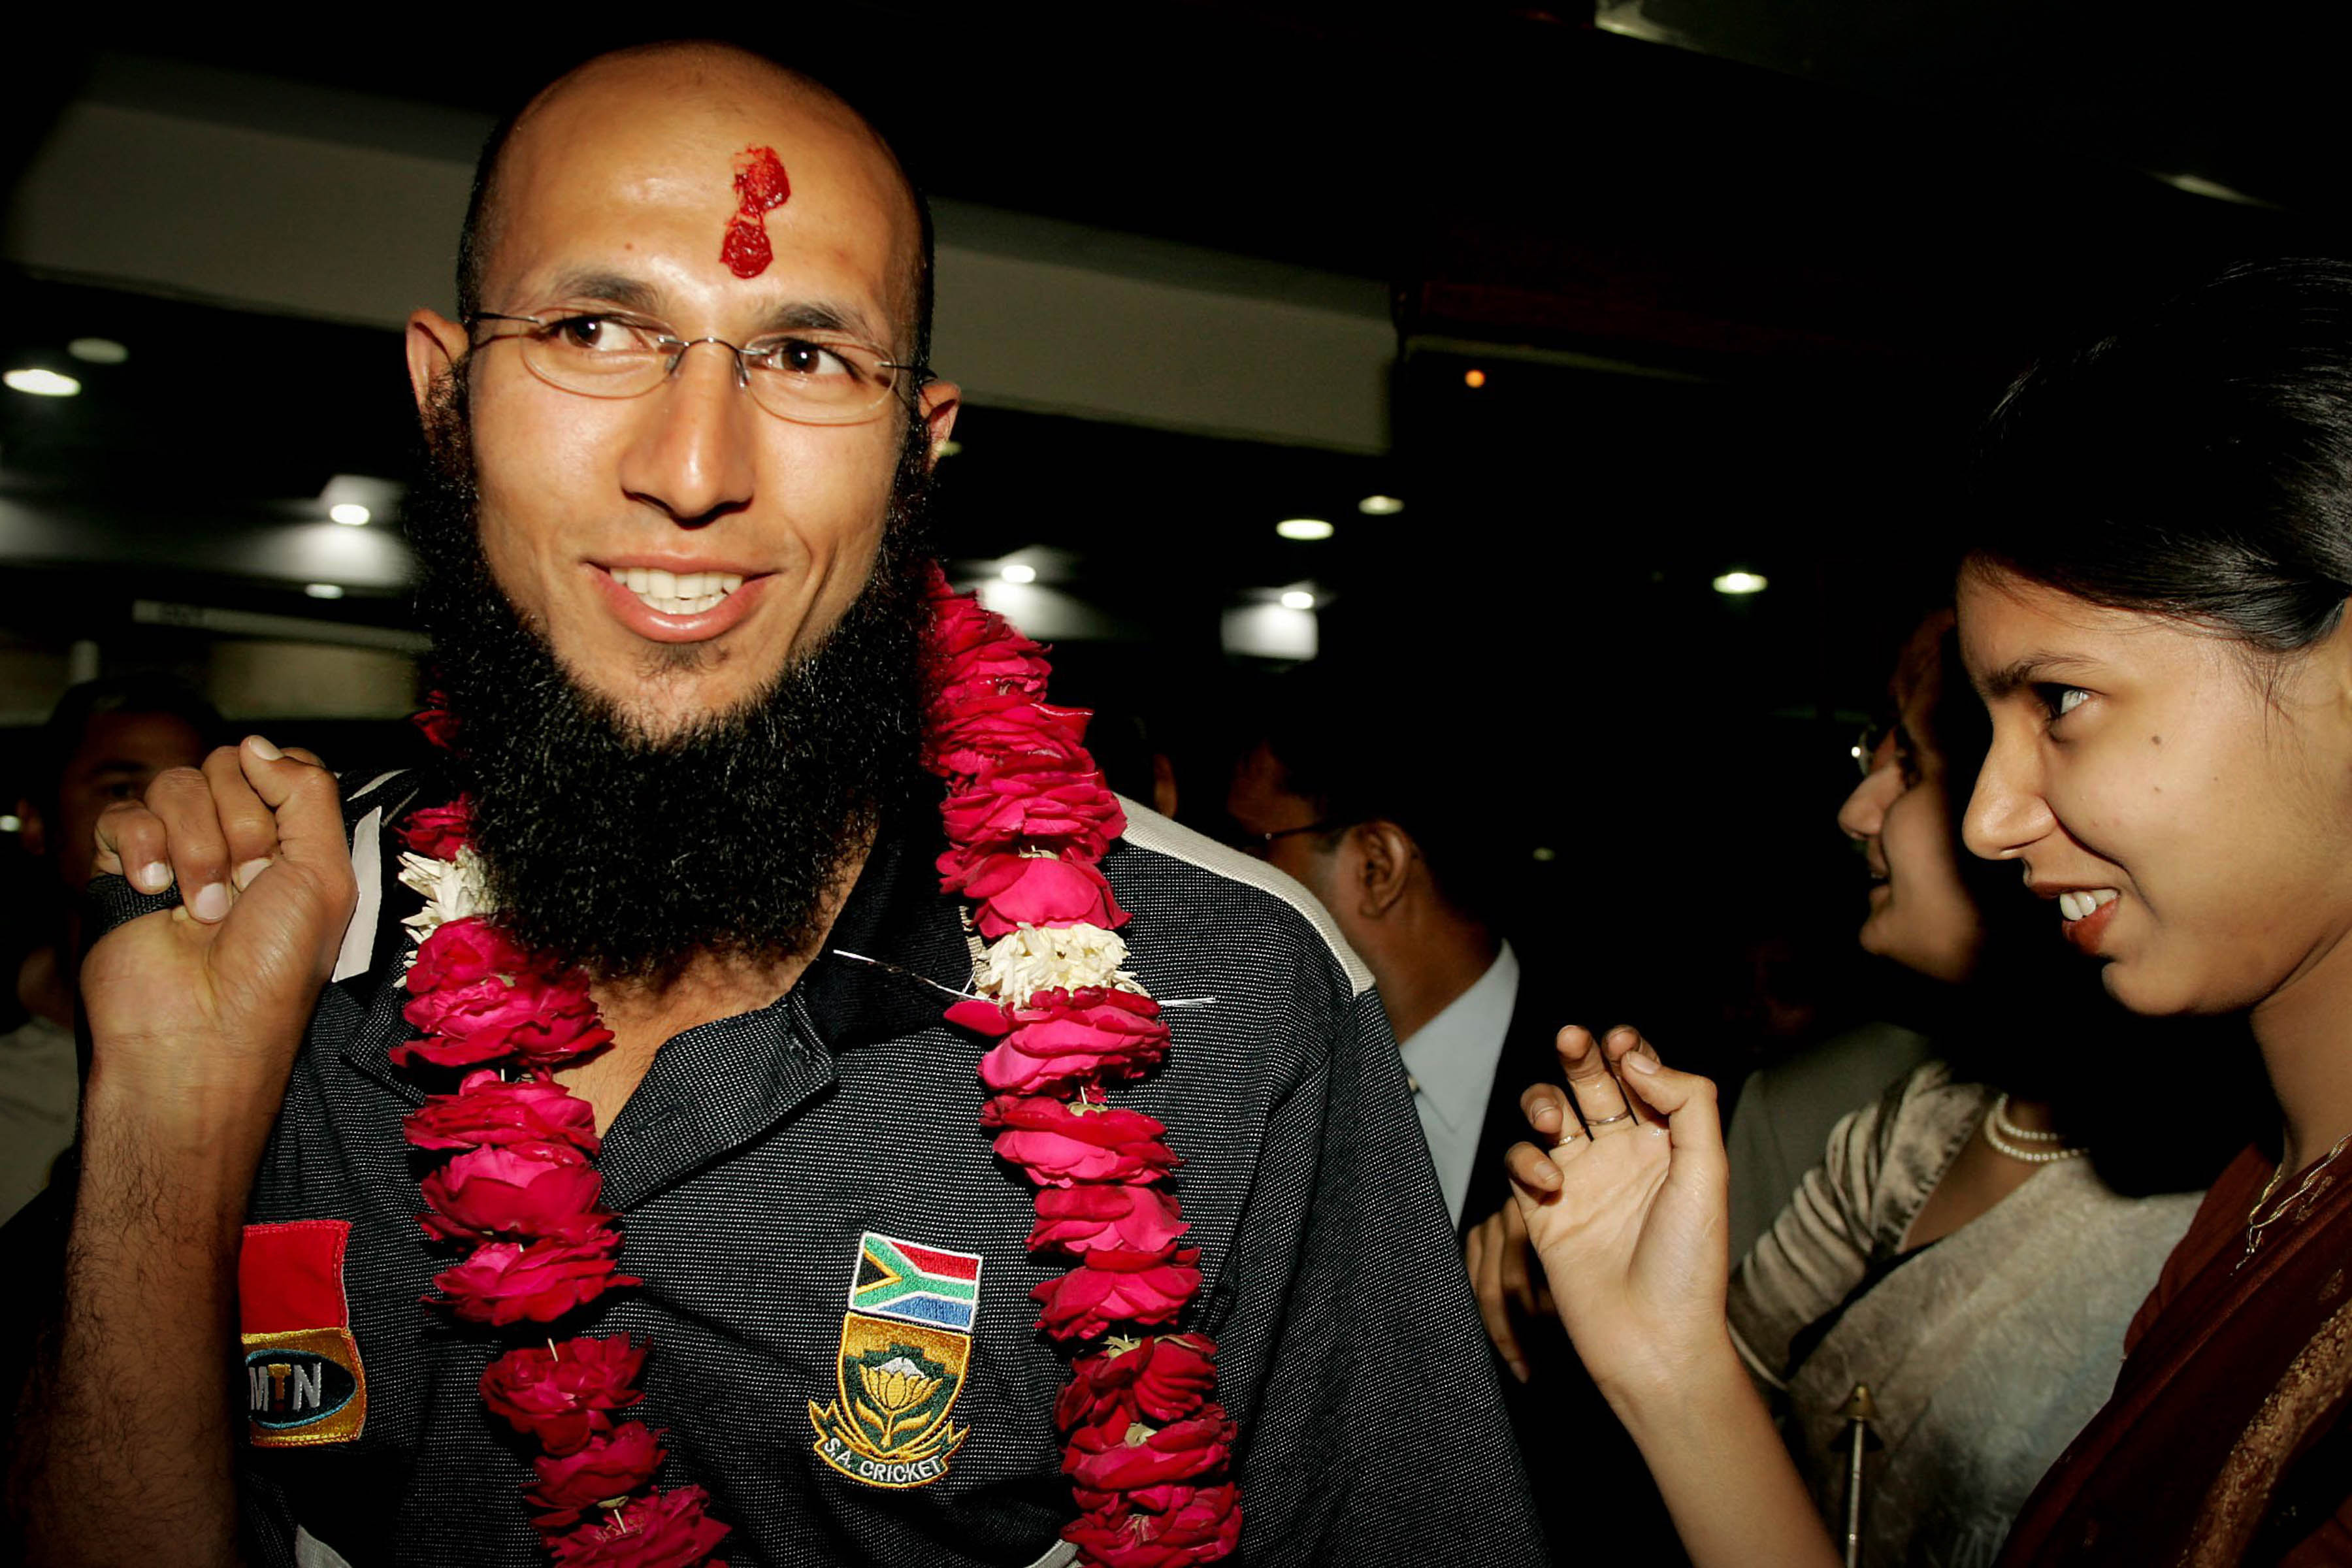 17 November 2004: Hashim Amla arriving in Kanpur late with the South African cricket team after their bus broke down in Lucknow, India. The Proteas lost the two-match Test series 1-0 after drawing the first game. (Photograph by Duif du Toit/Gallo Images)